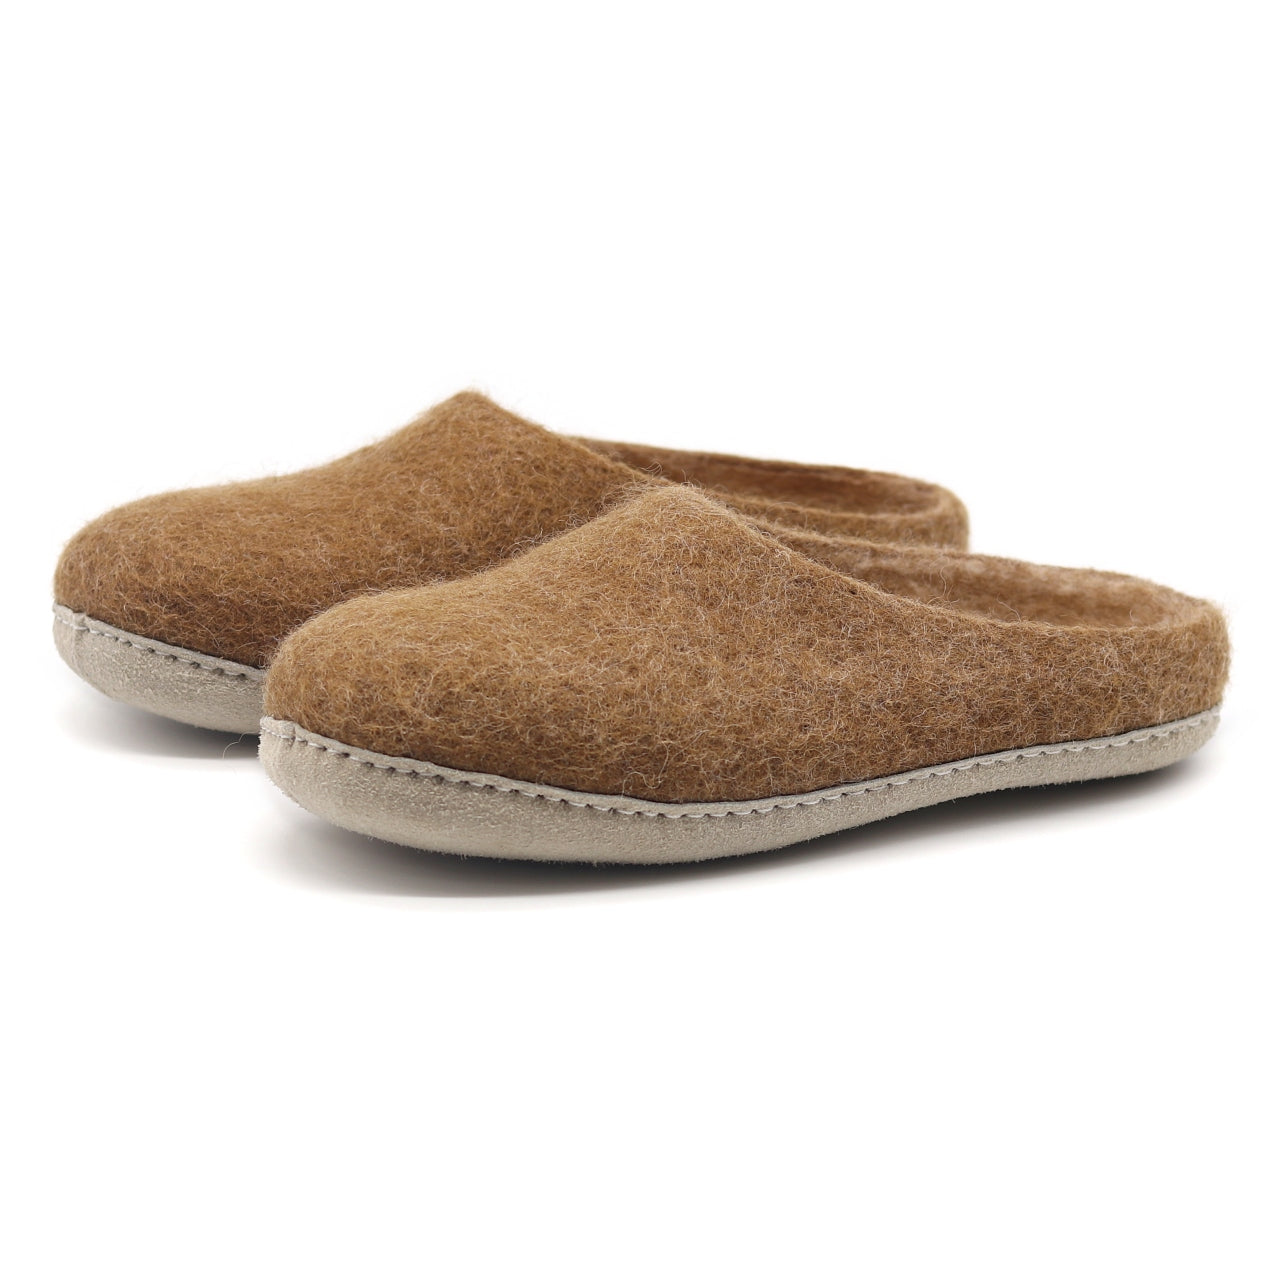 Women's Astoria Wool House Slippers in Toffee